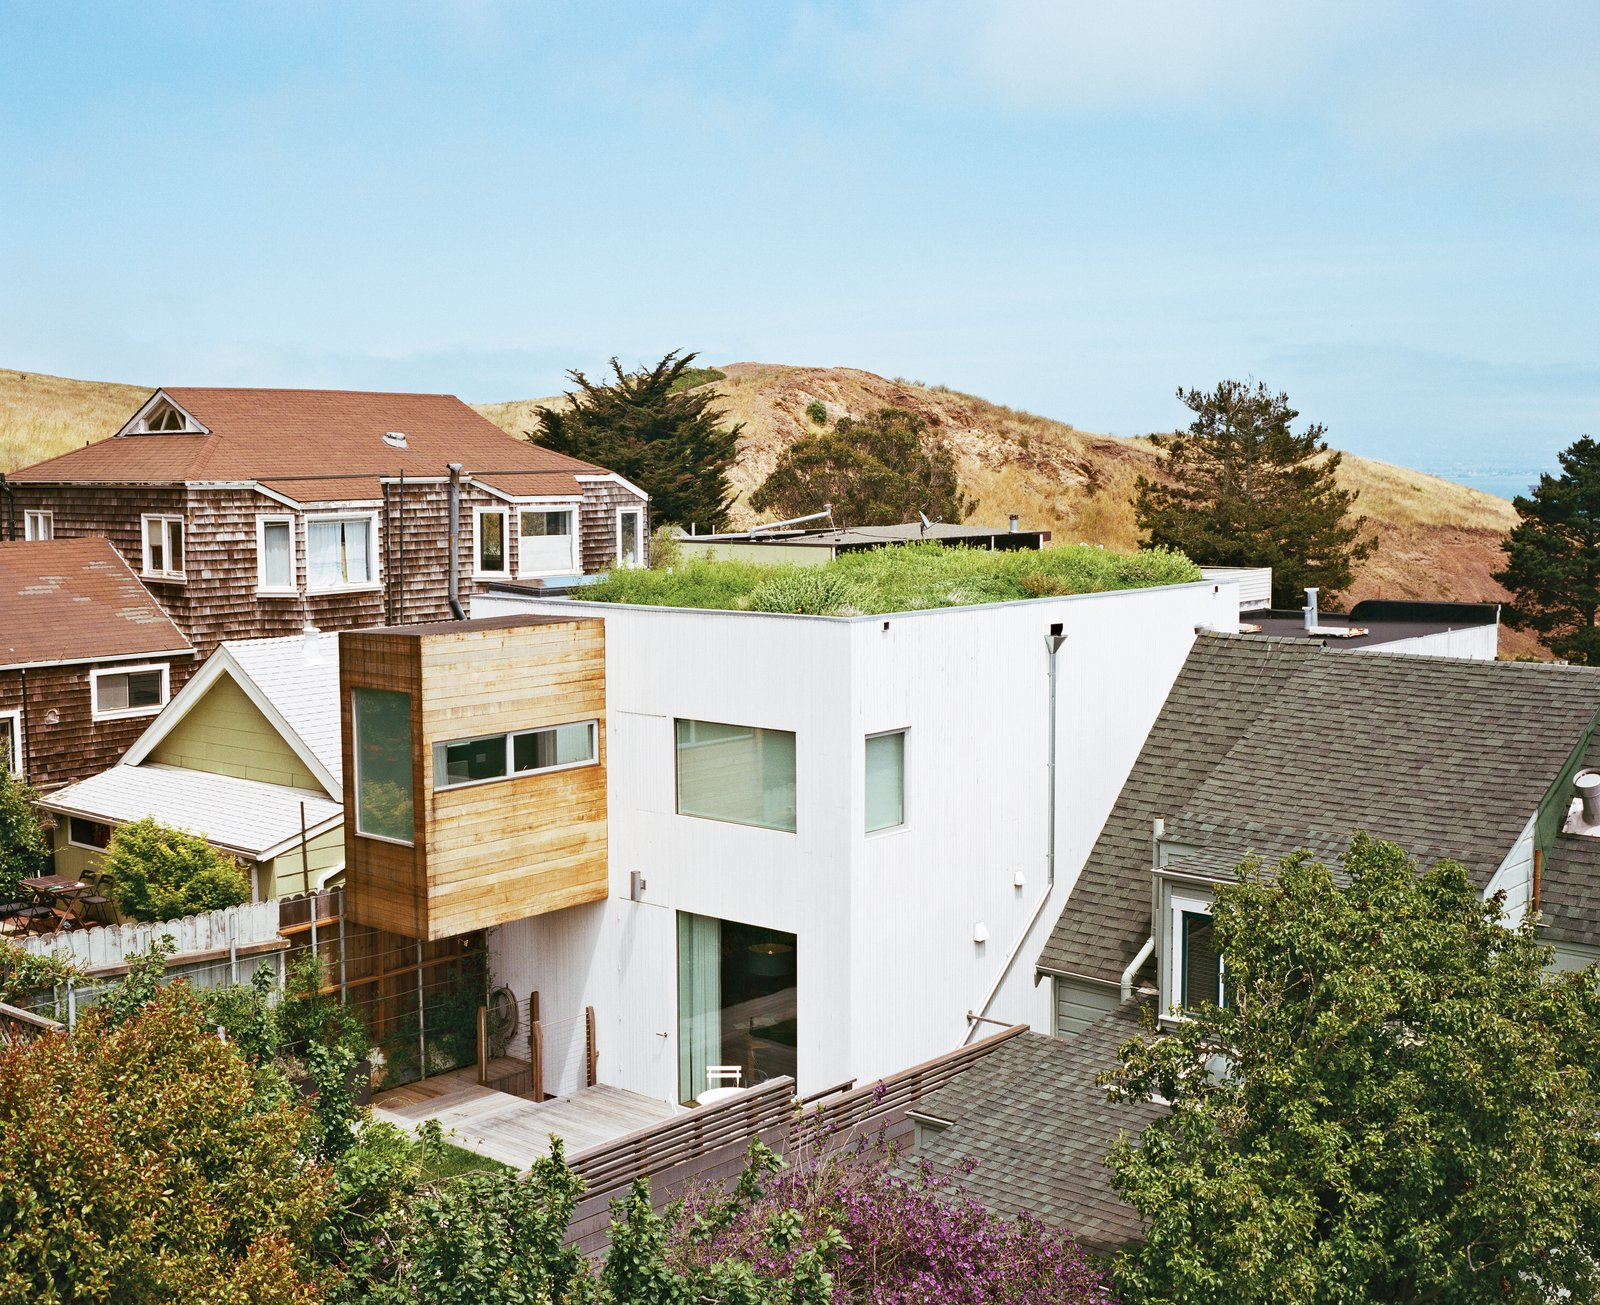 Articles about 5 spacious san francisco homes on Dwell.com